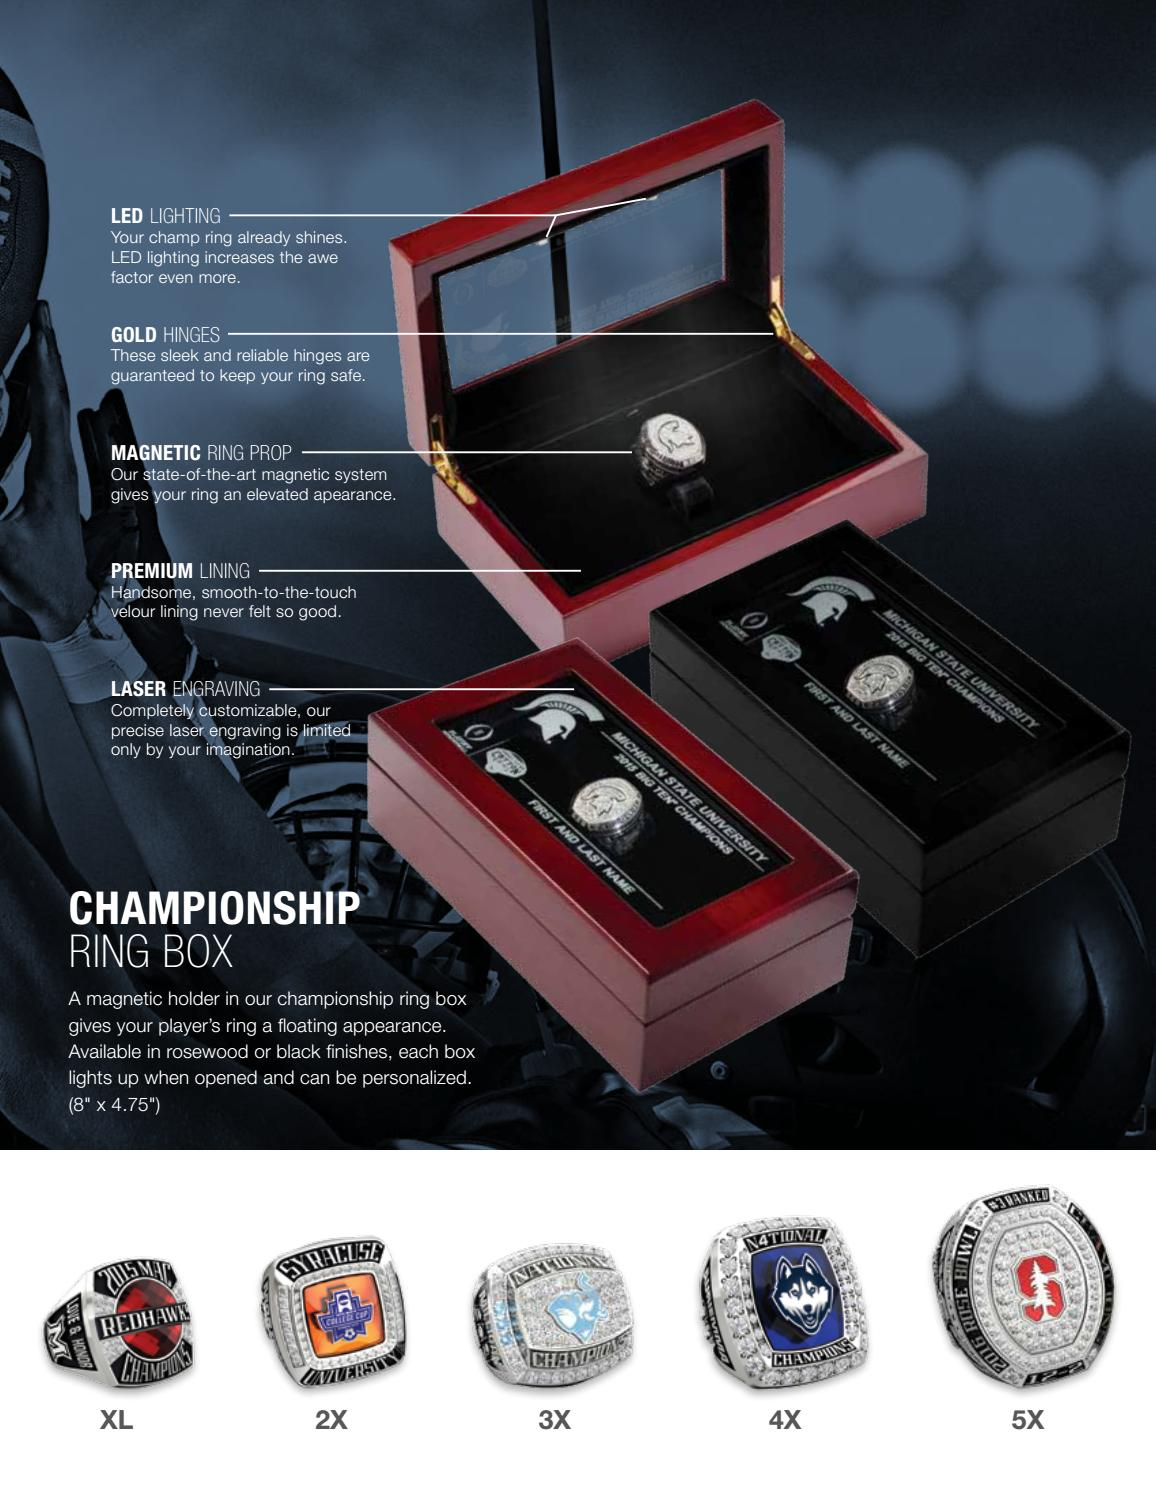 Jostens College Championship Sports Jewelry Catalog by Jostens - issuu